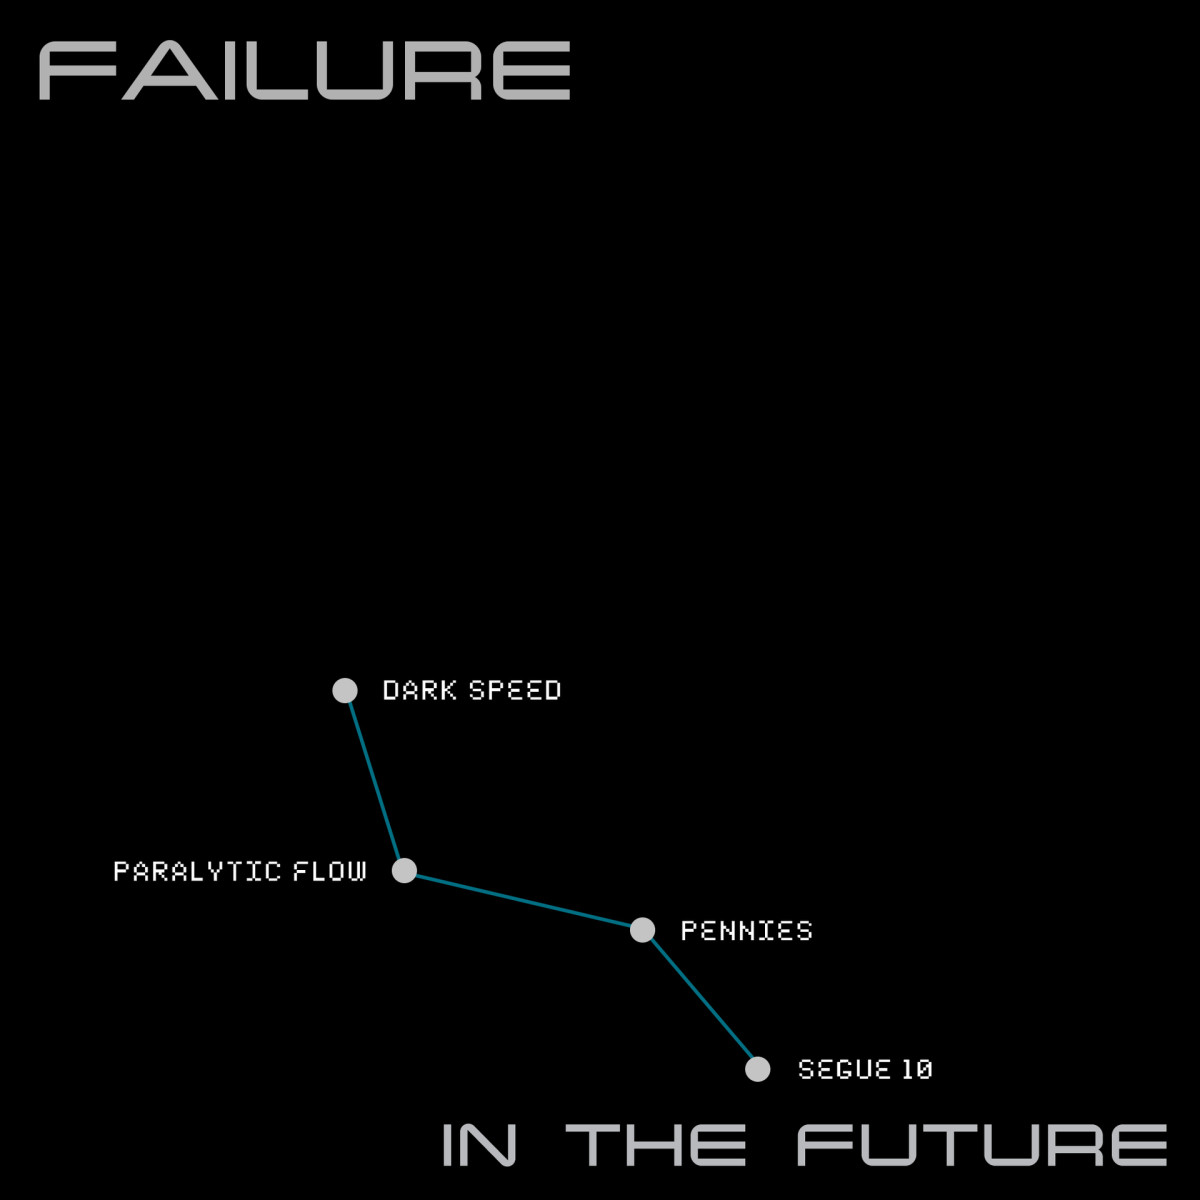 Failure new EP in the Future